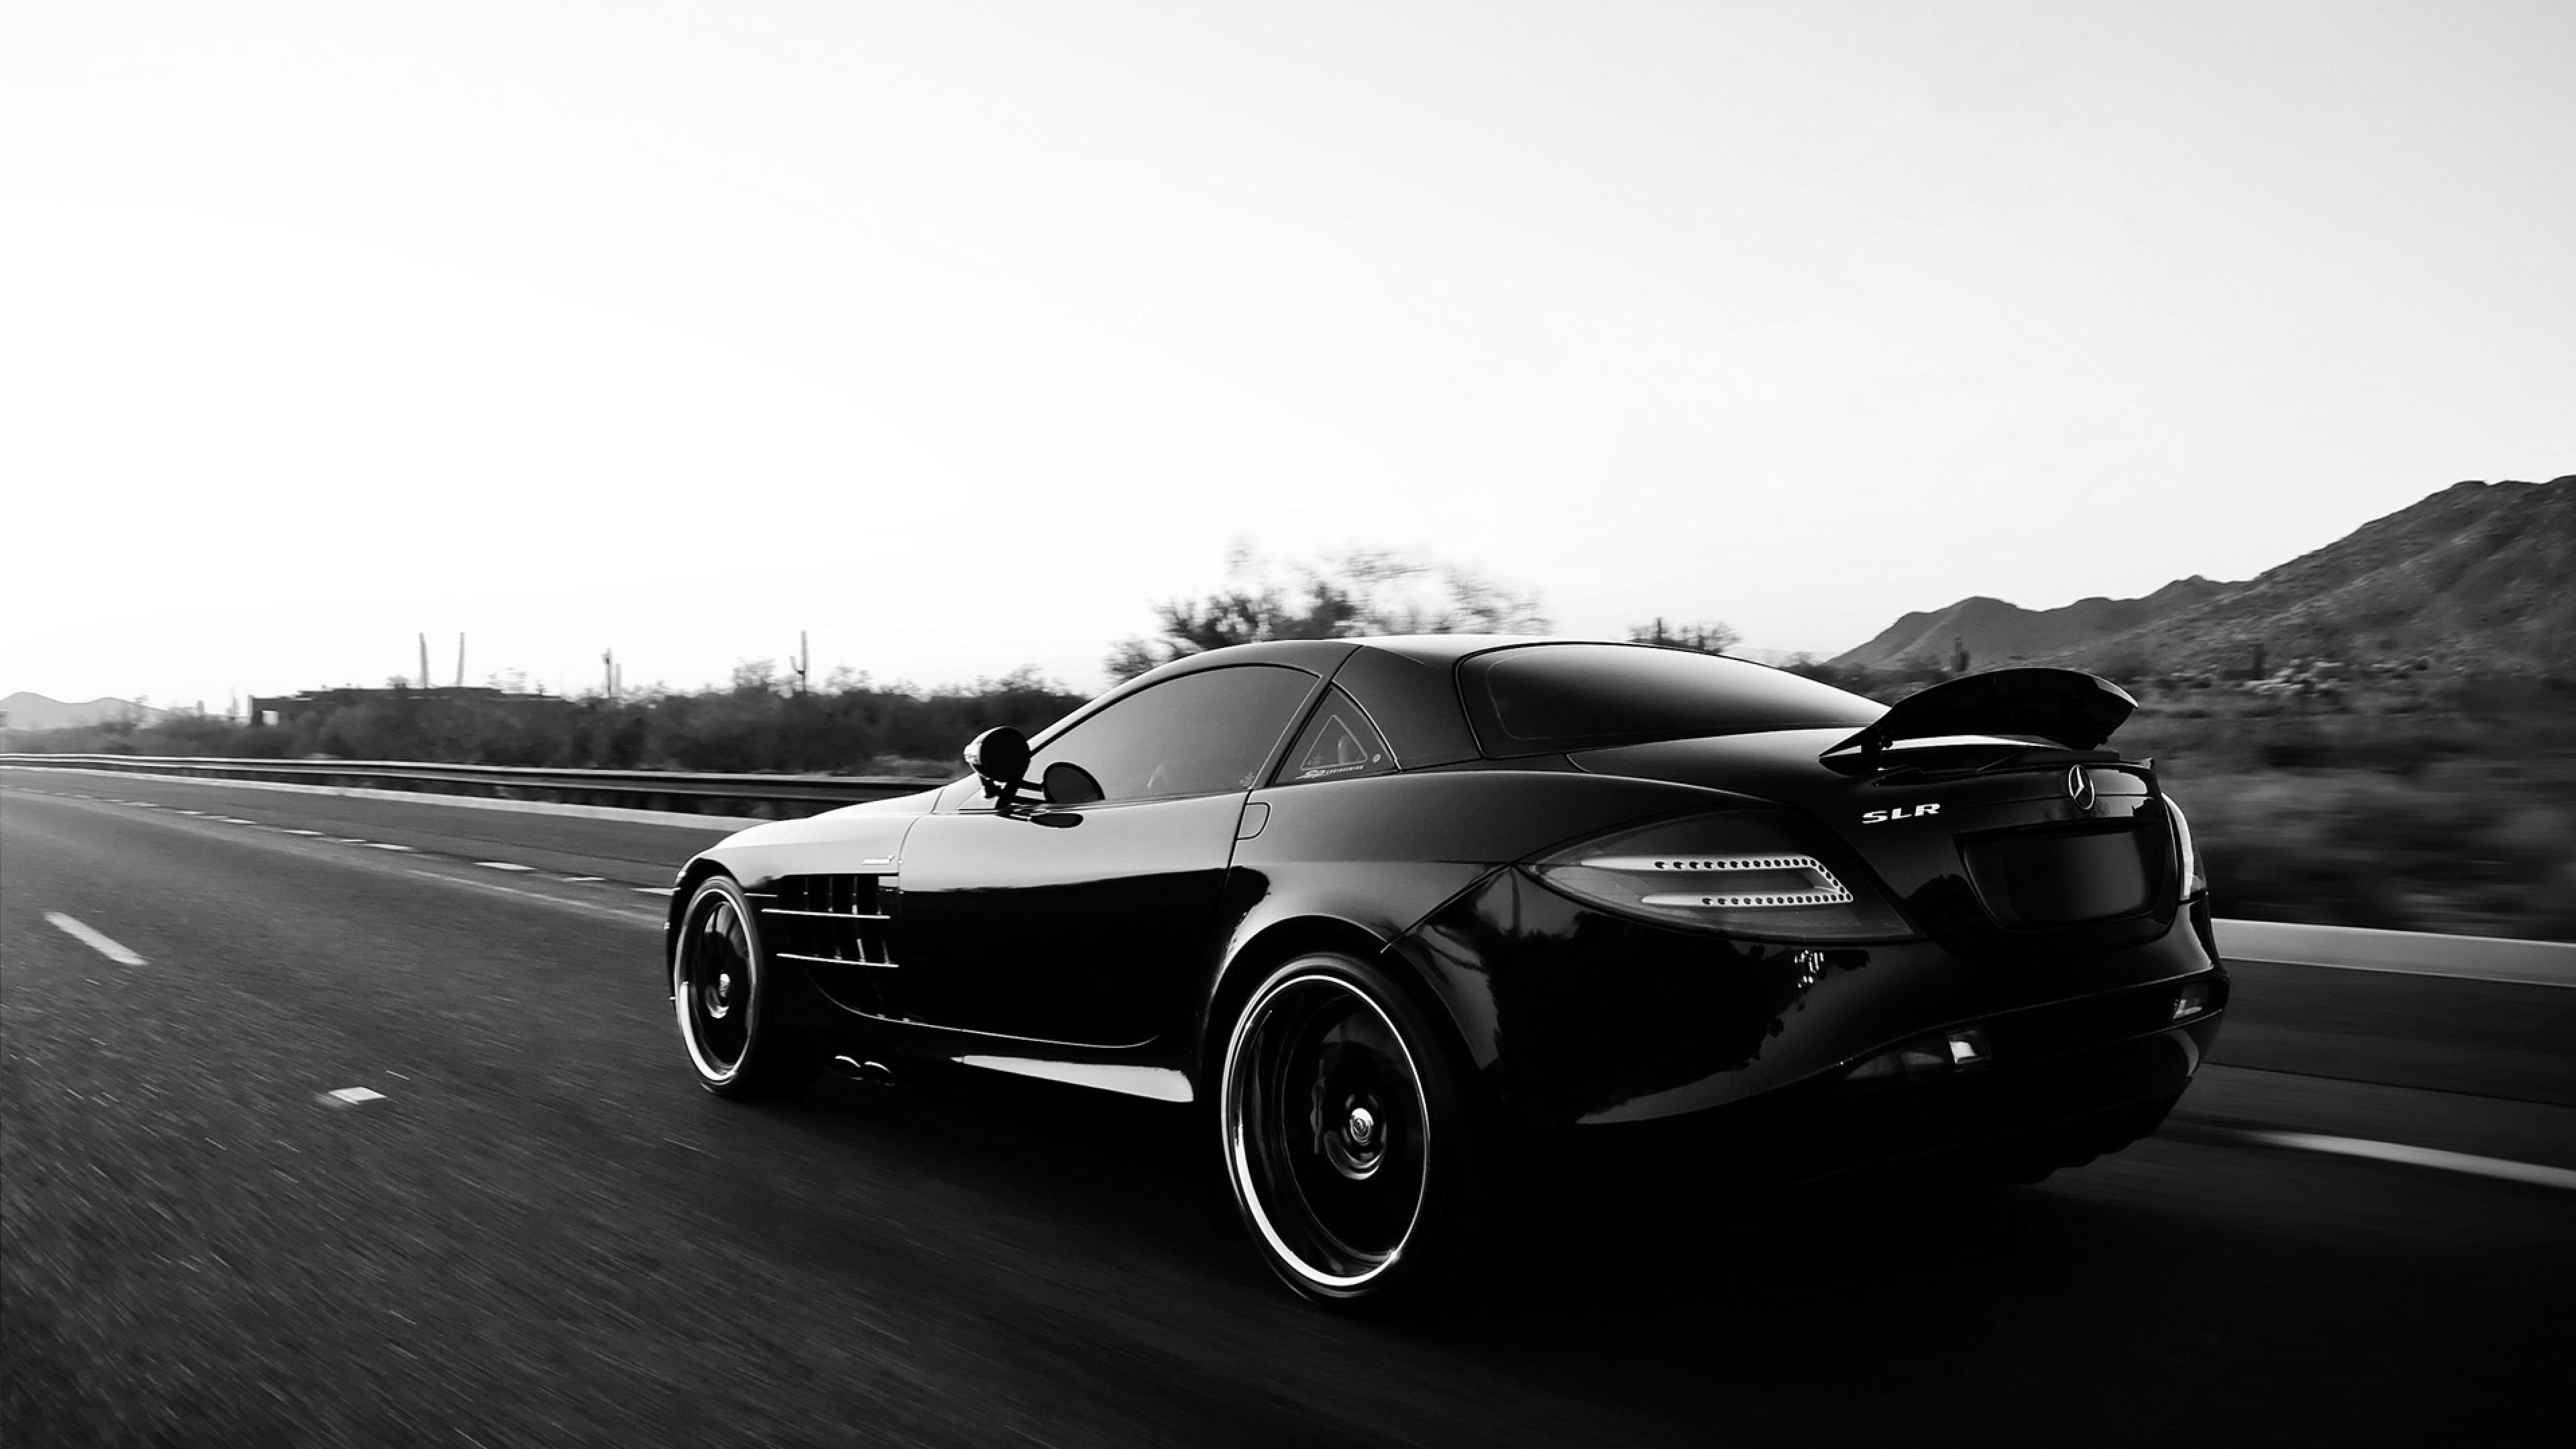 Cars Wallpapers: 4K Cars Wallpapers High Quality